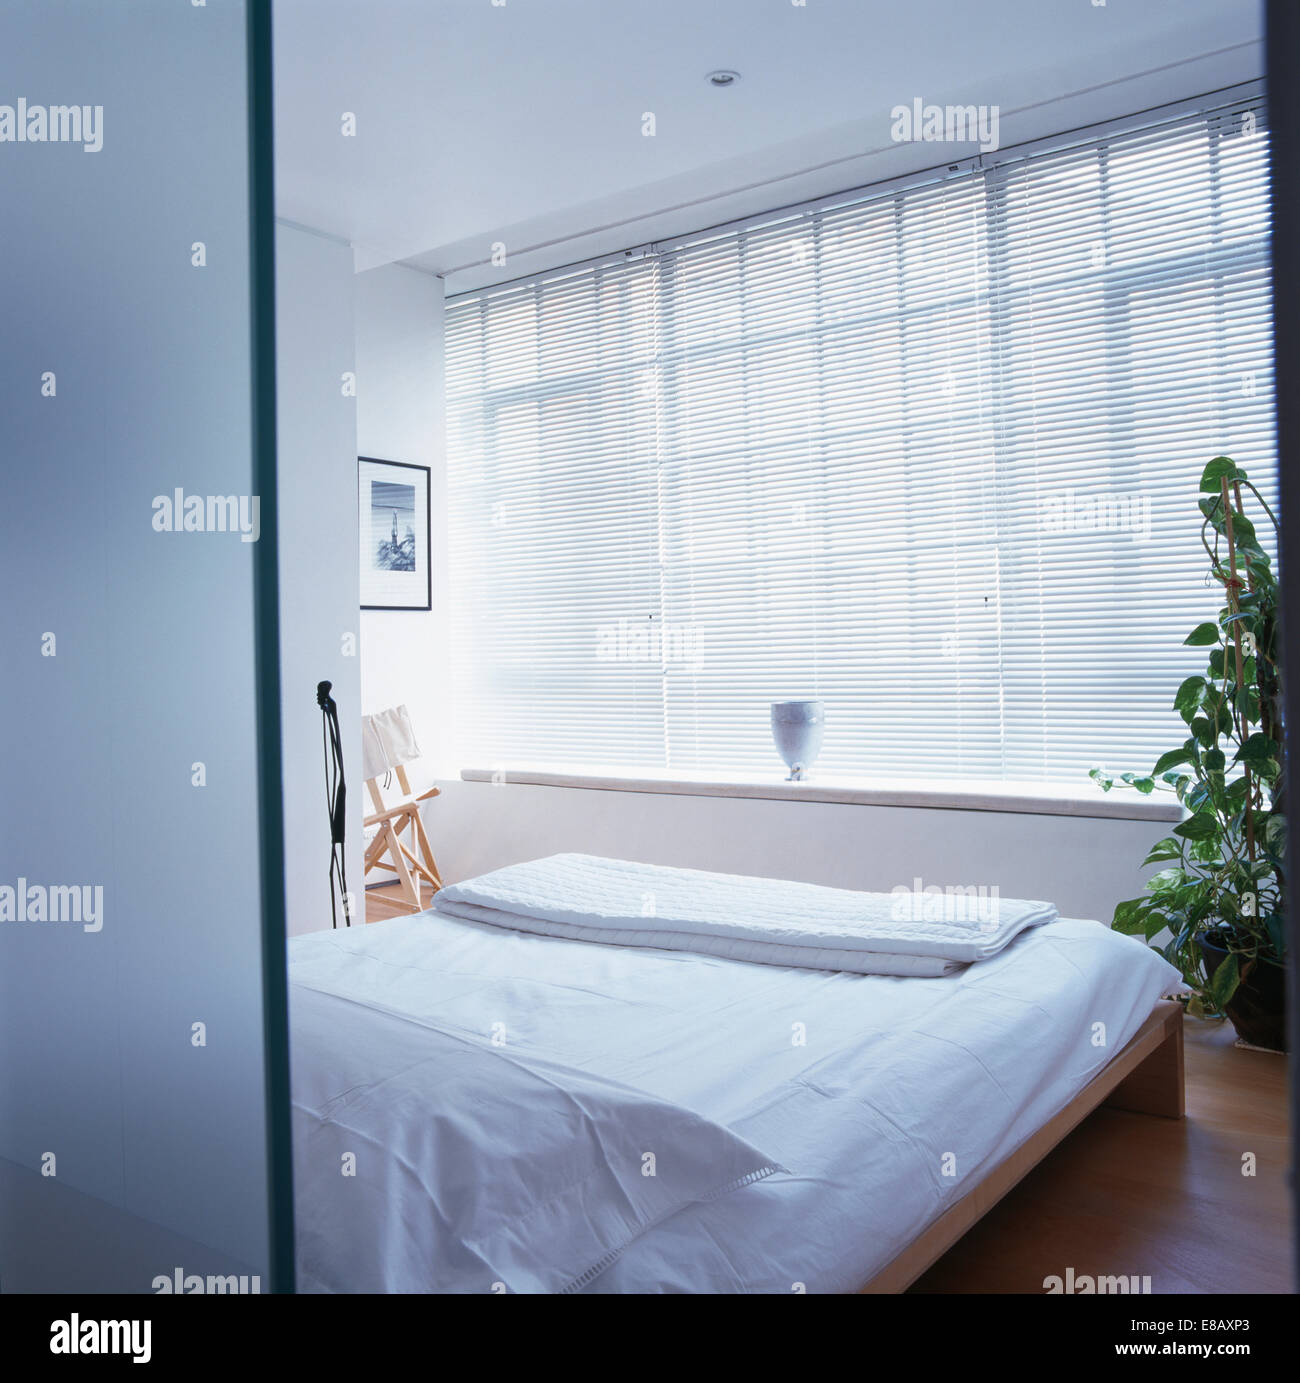 White linen blinds on window above sink in white Portuguese ...